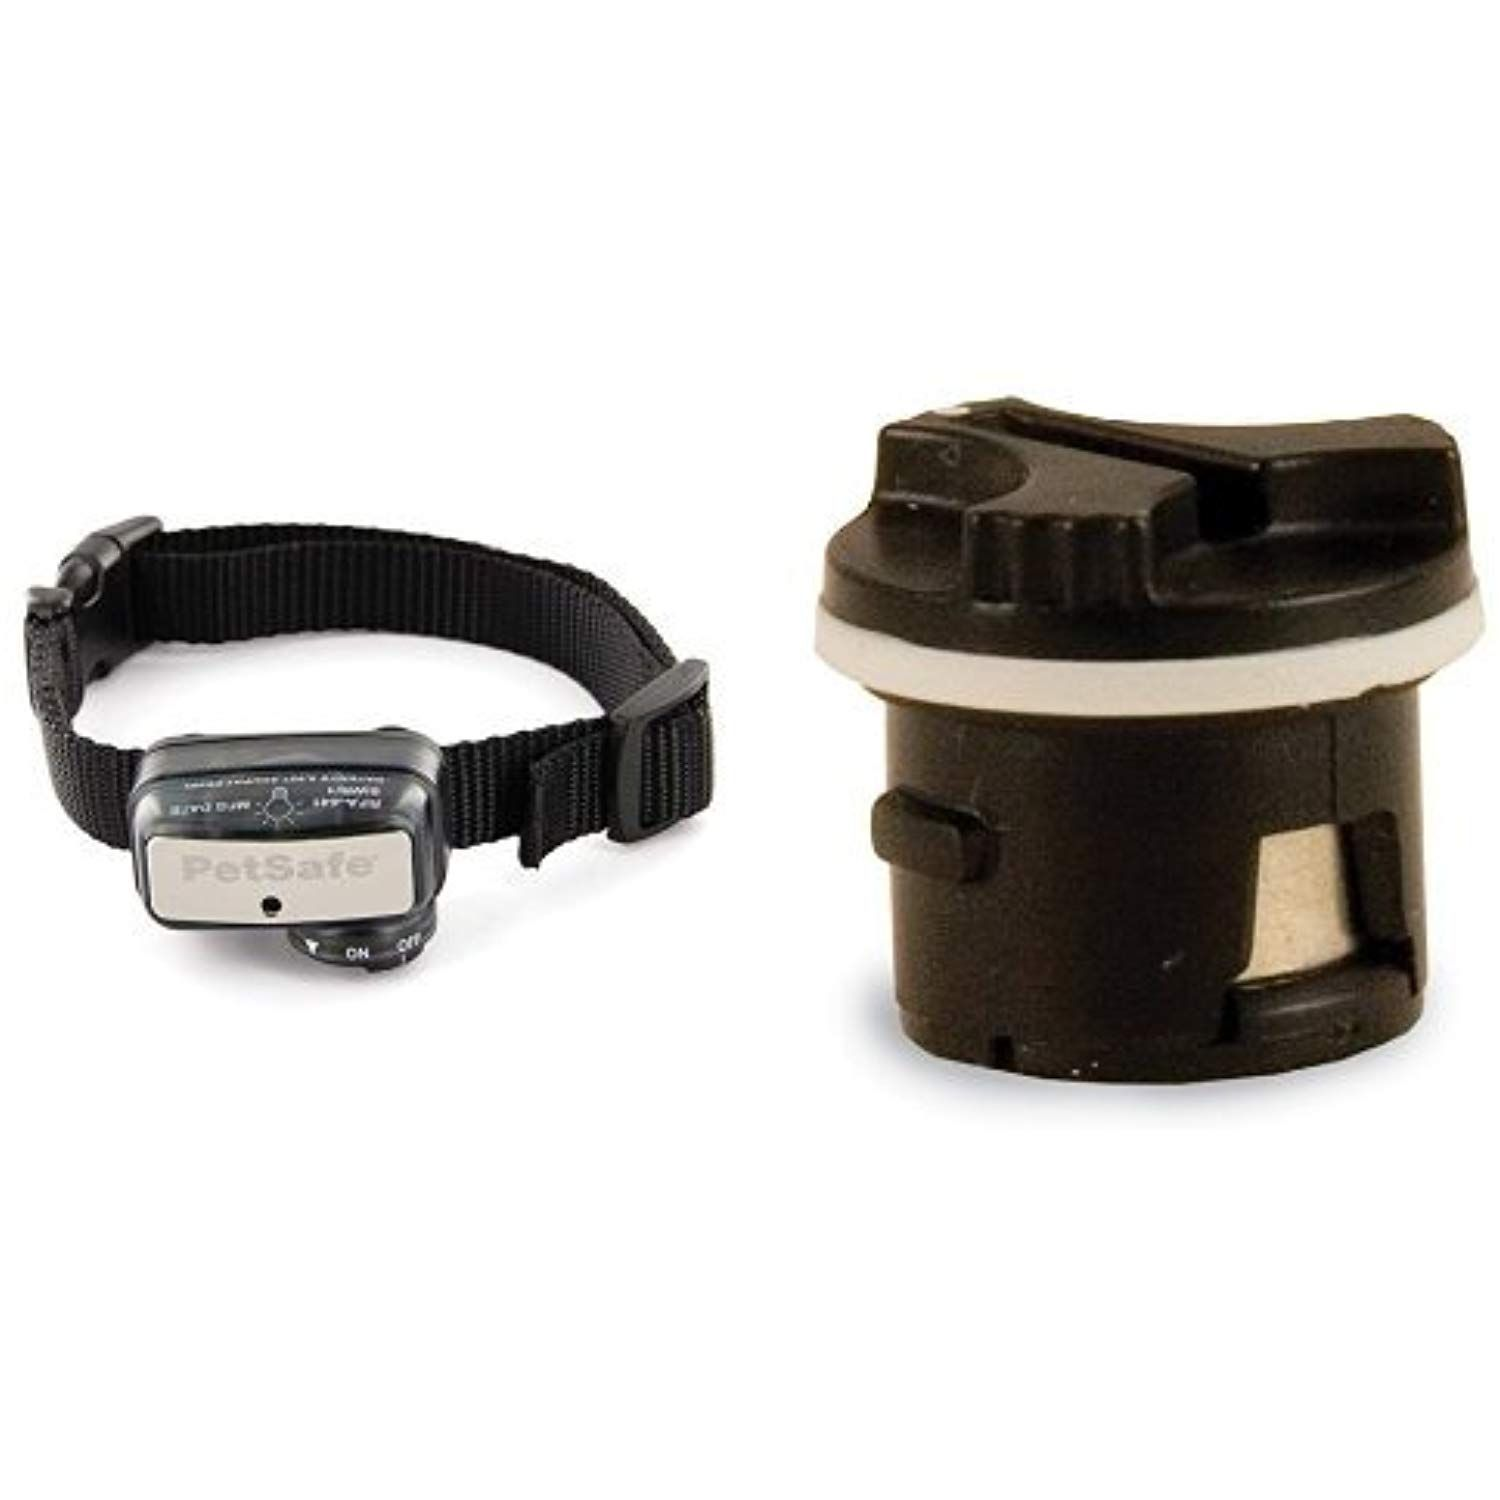 Deluxe Little Dog Bark Collar And Replacement Battery Bundle